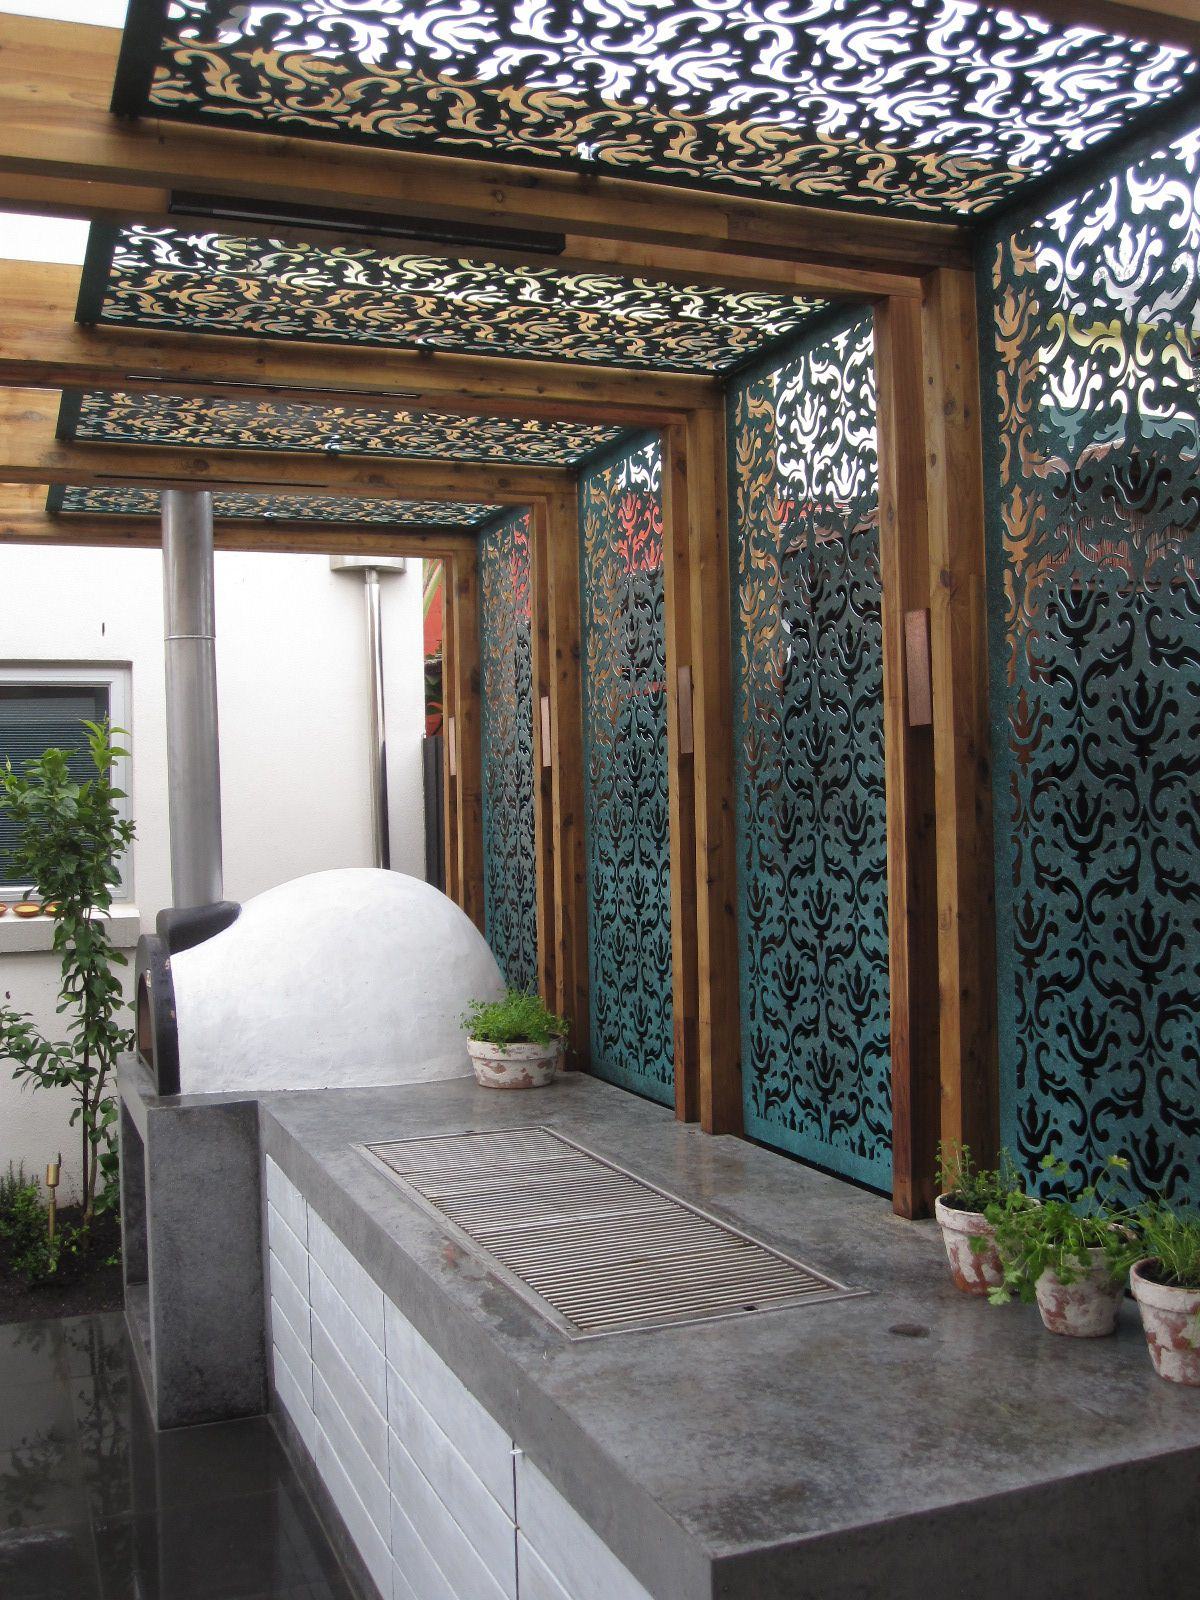 Shade screen in a pergola